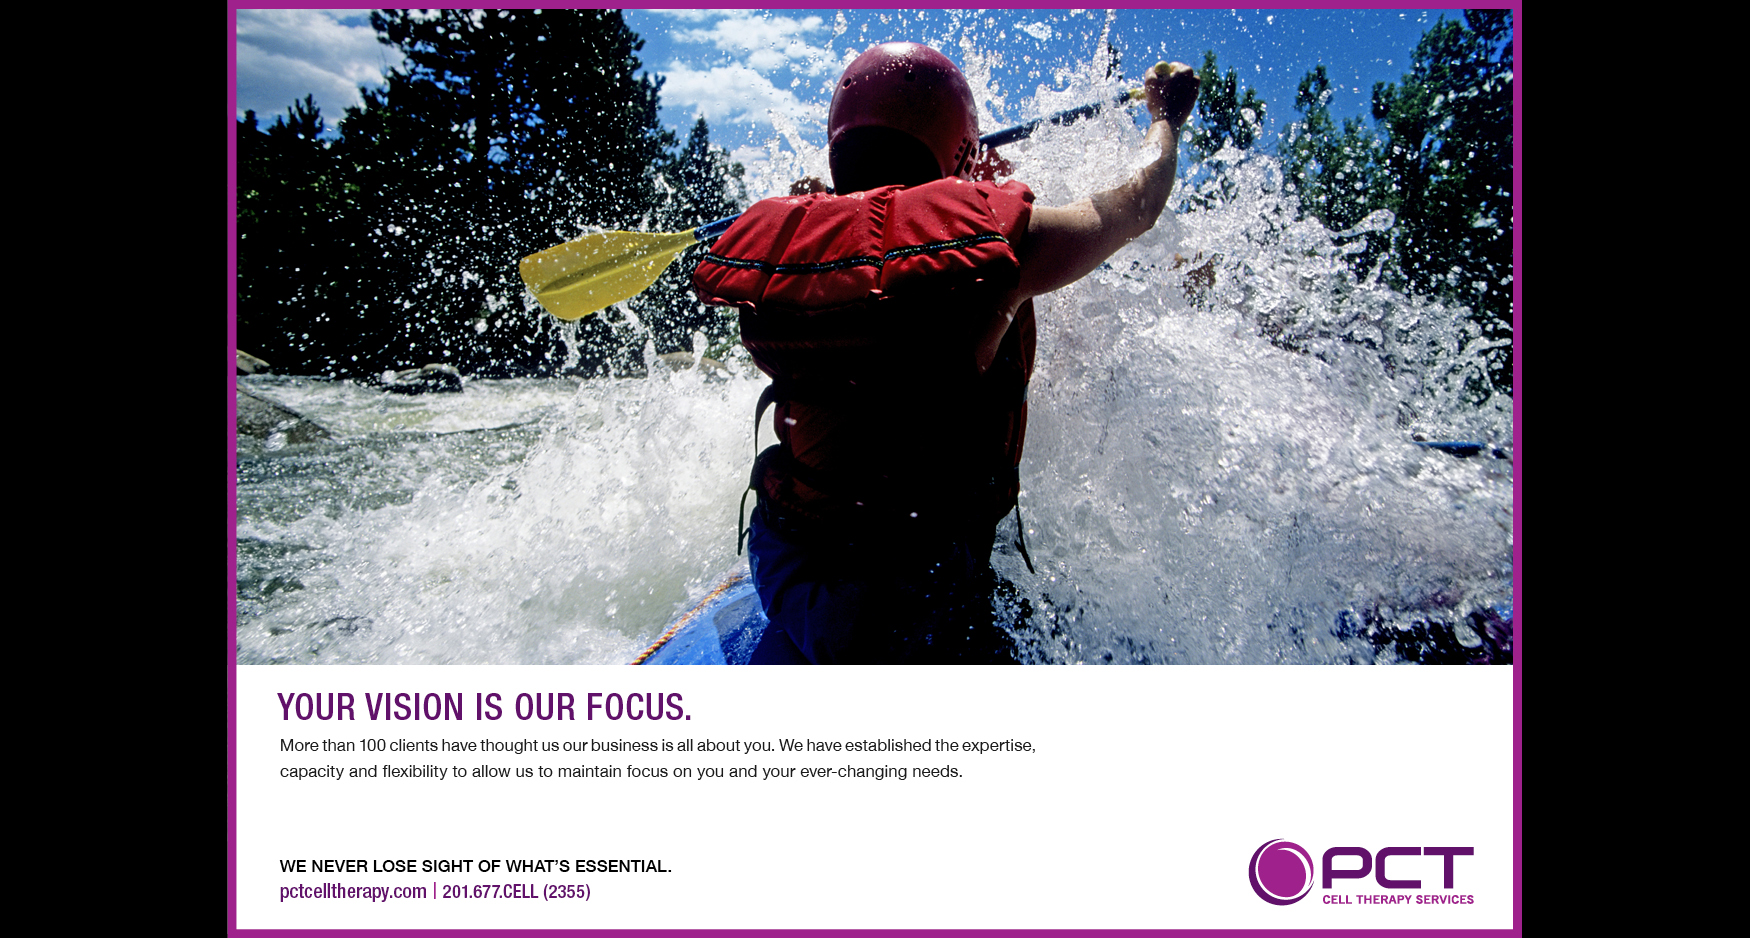 kayak - PCT CELL THERAPY - ADVERTISING